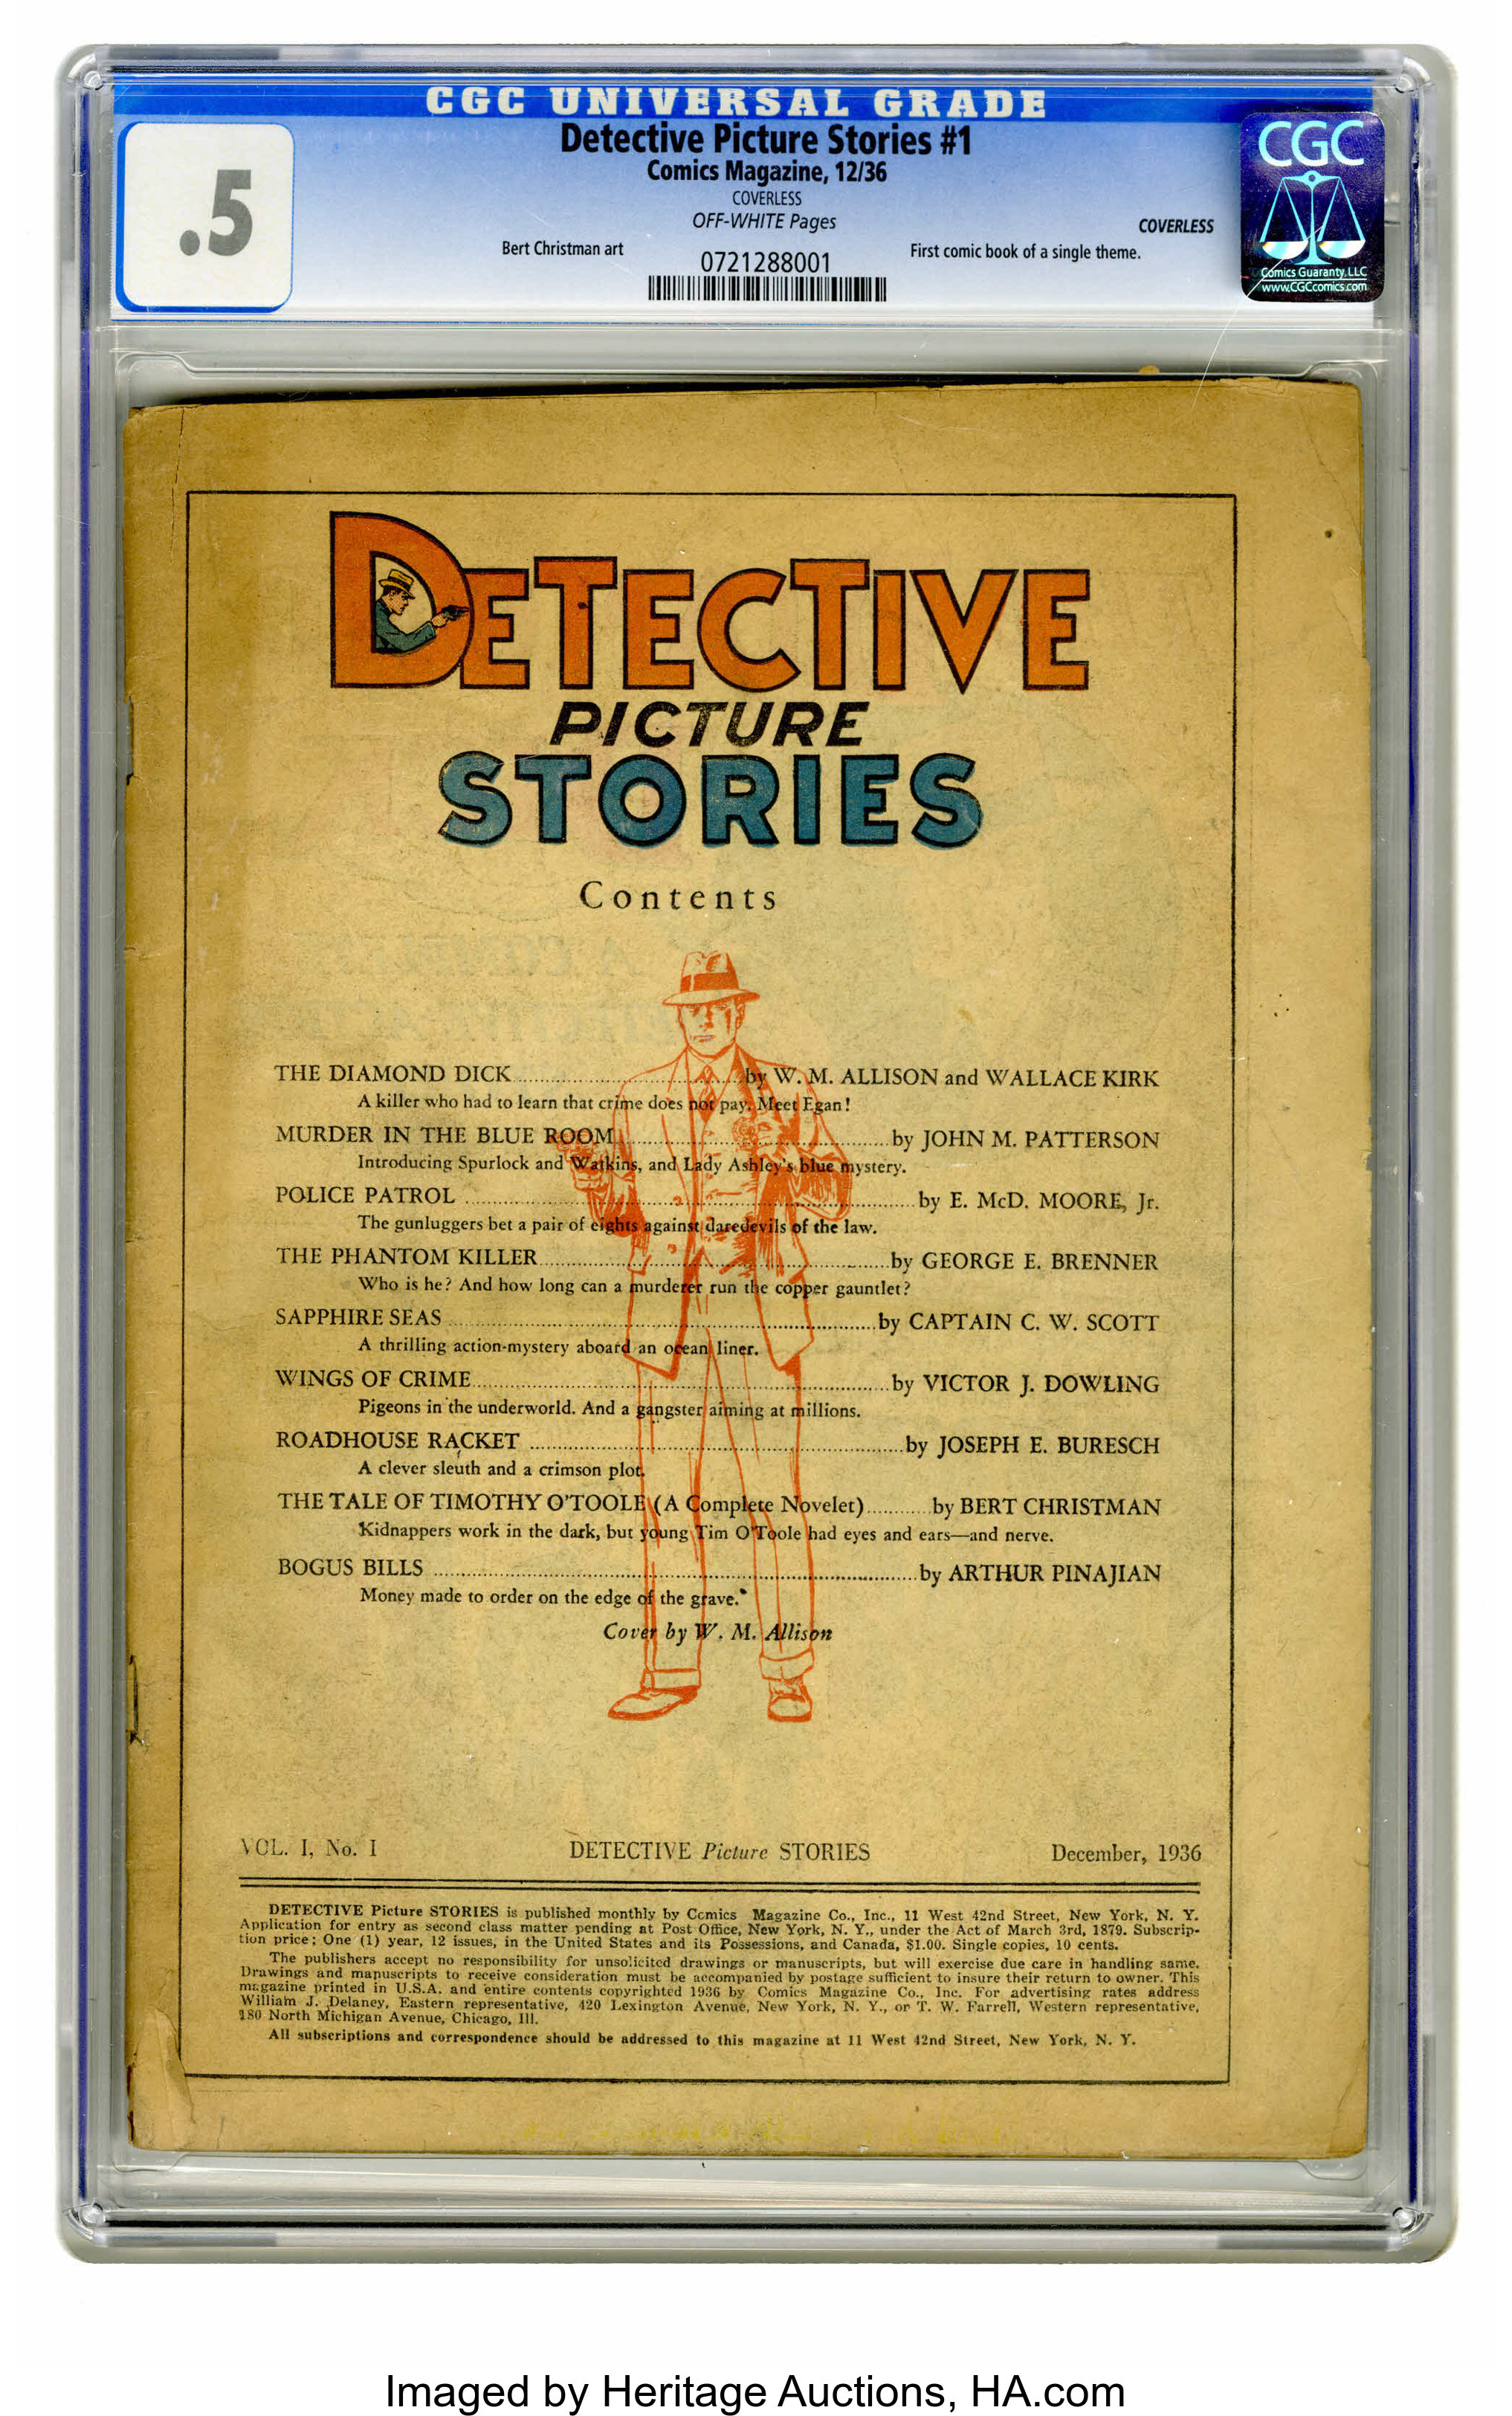 Detective Picture Stories #1 (Comics Magazine, 1936) CGC PR